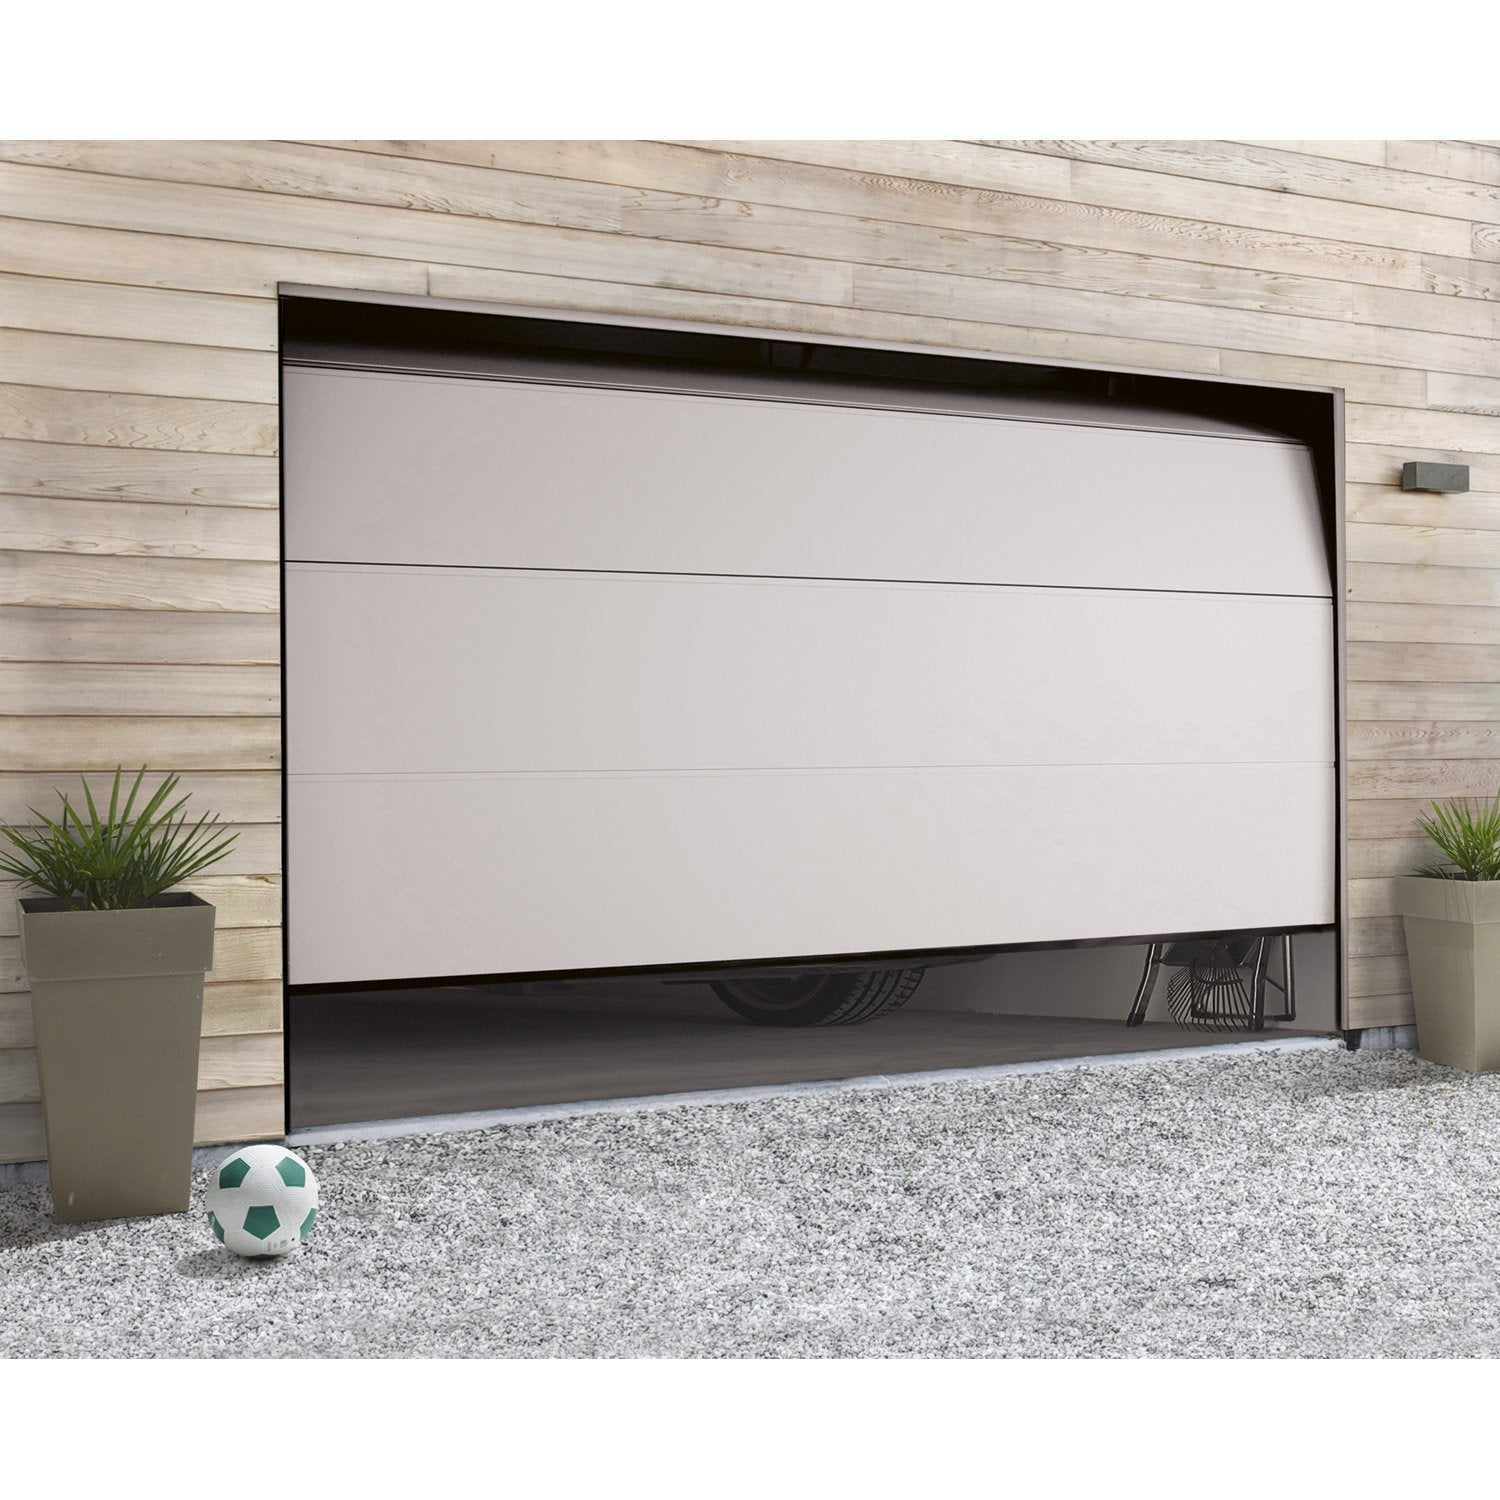 Porte de garage sectionnelle motoris e hormann x cm leroy merlin - Porte de garage motorisee somfy ...